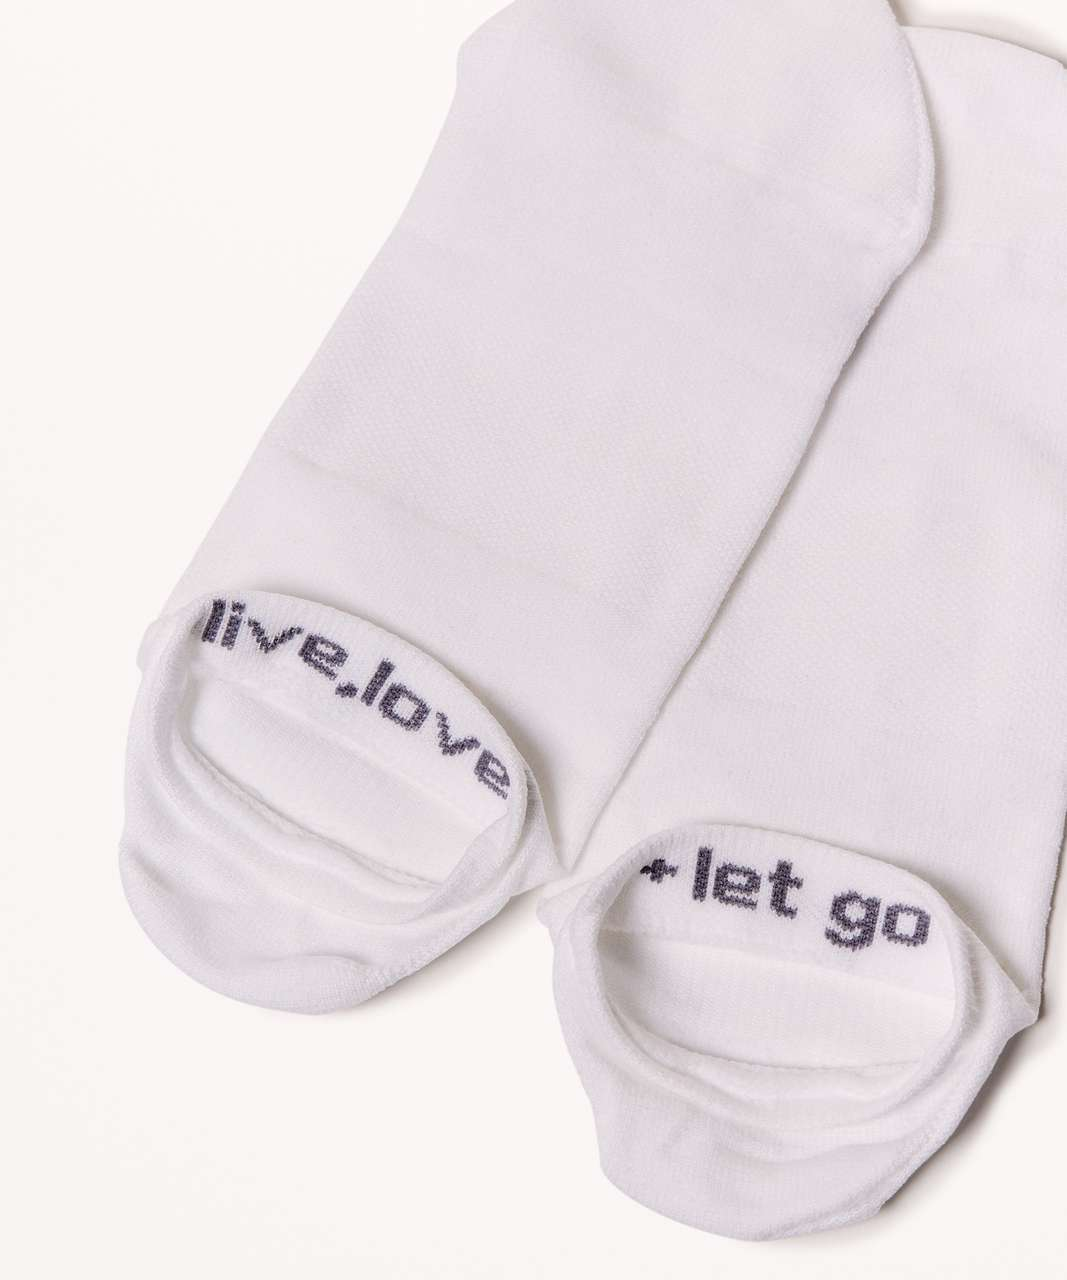 Lululemon Play All Day Sock - White